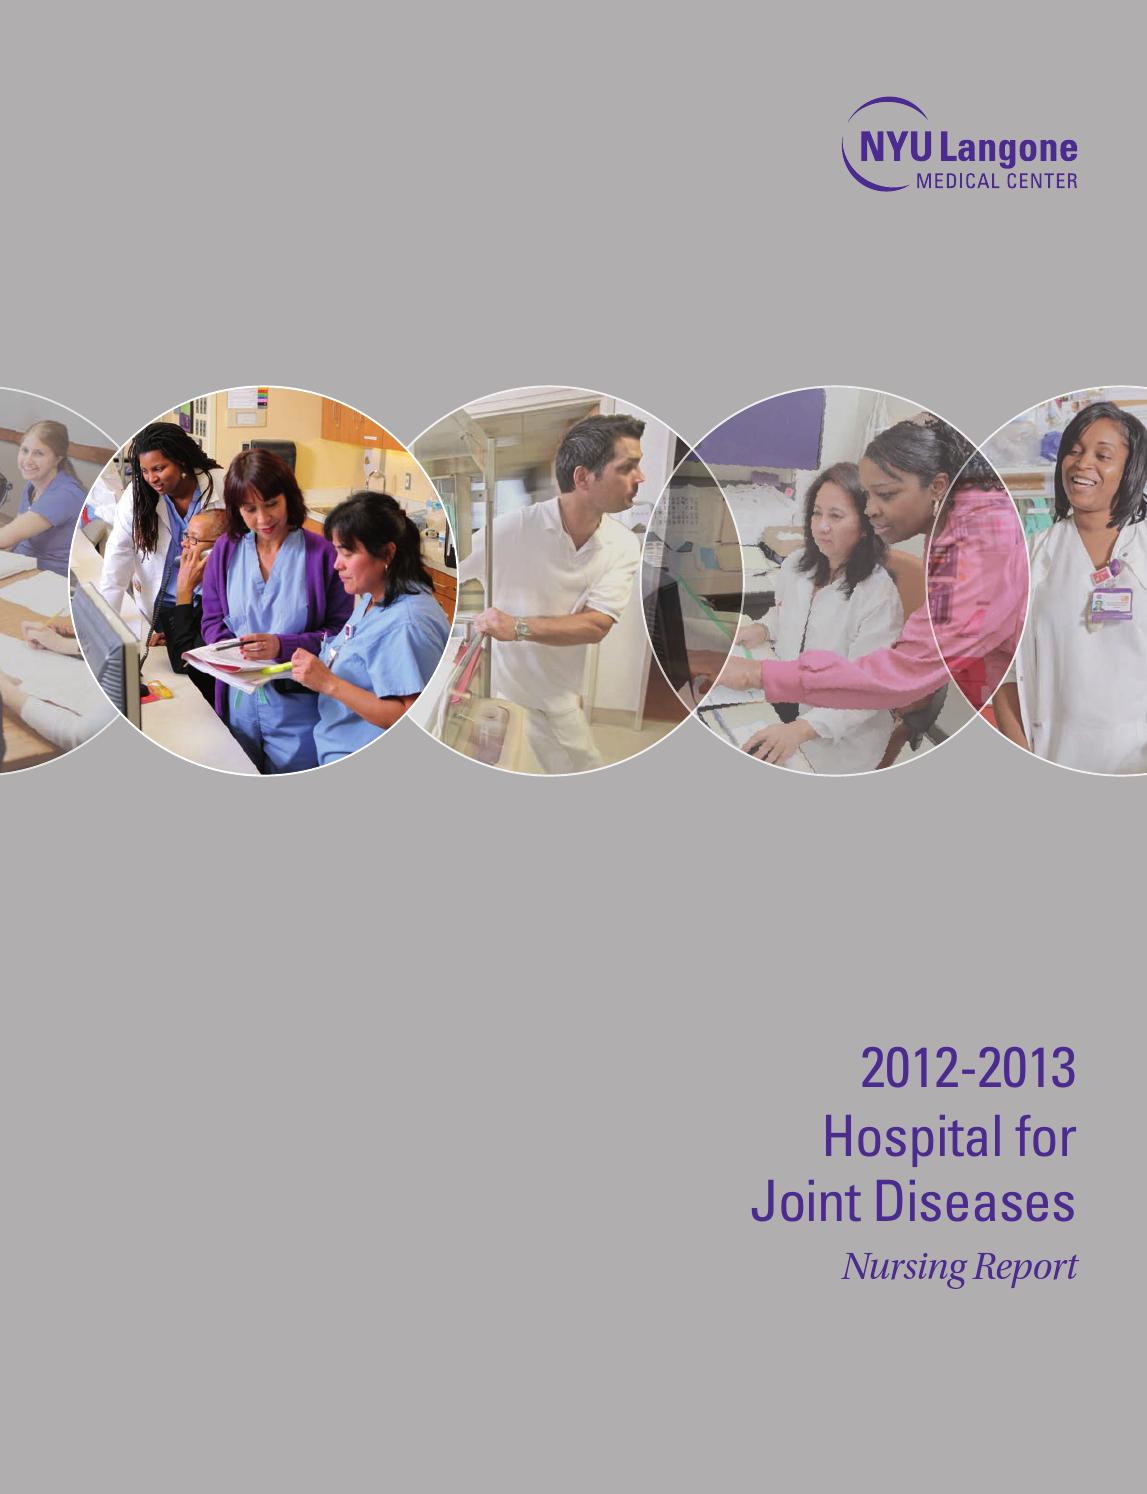 NYU Langone -- Hospital for Joint Diseases Nursing Report by